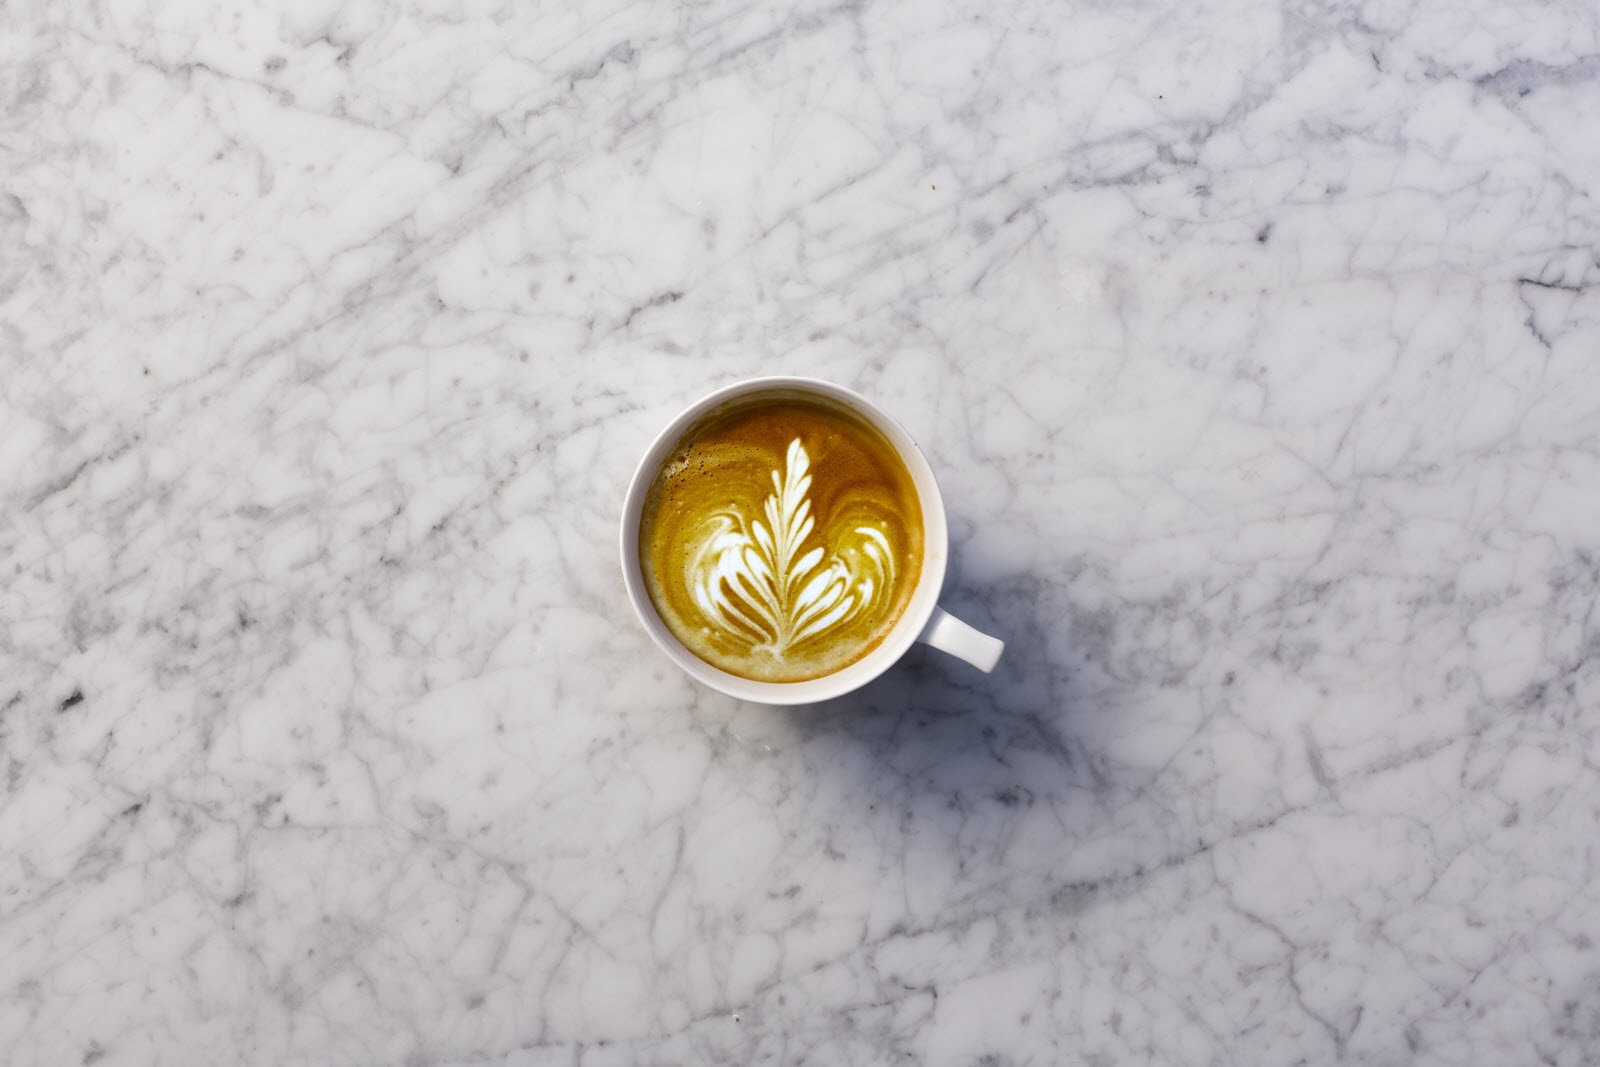 Coffee with latte art